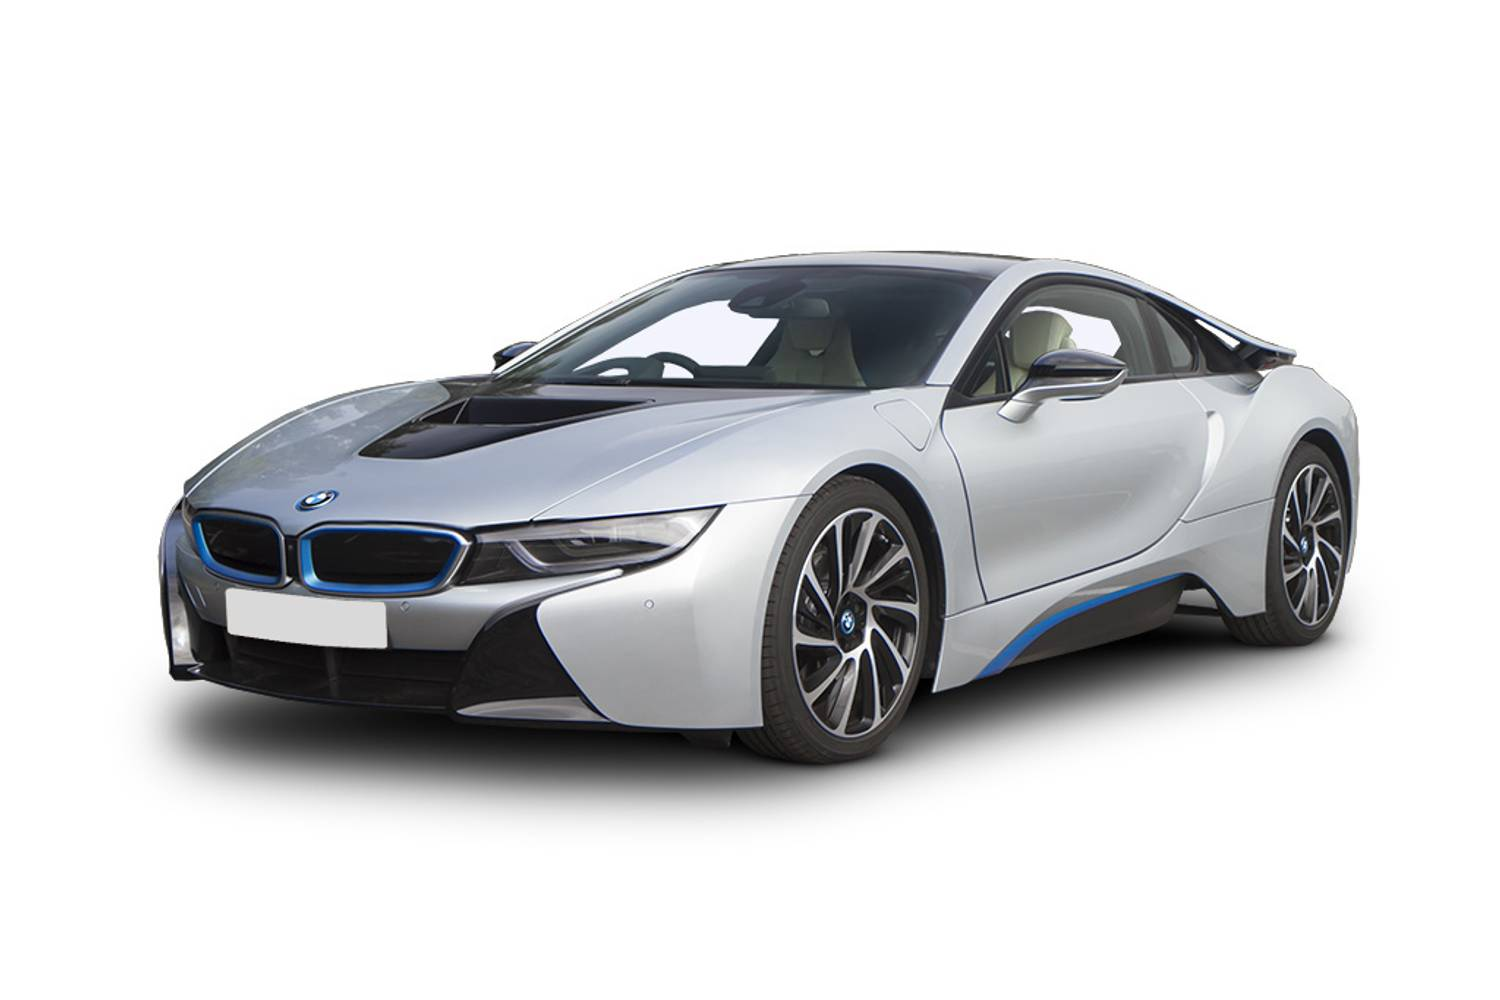 New Bmw I8 Coupe Special Edition Protonic Frozen Black